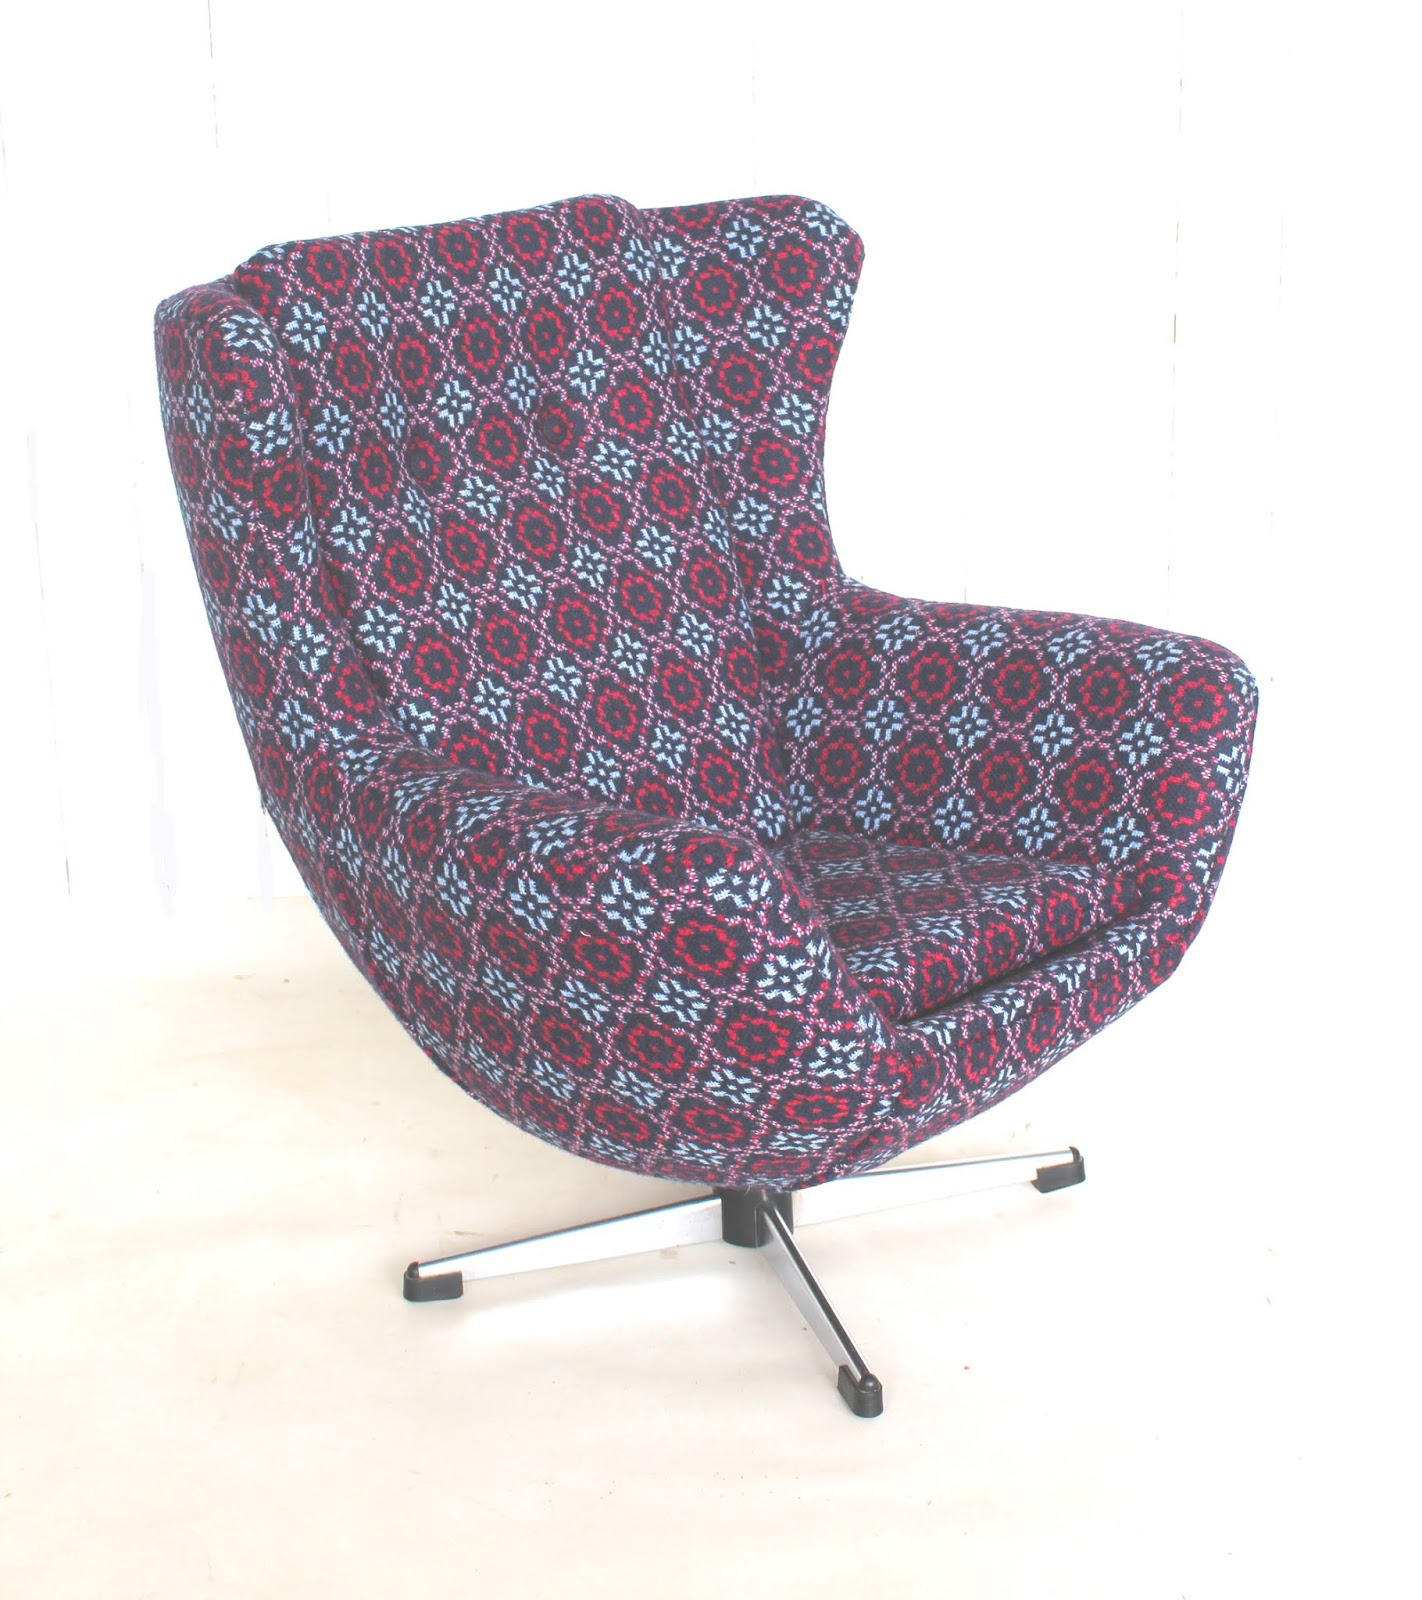 Reupholster Egg Chair Mick Sheridan Upholstery Child S Egg Style Chair In Melin